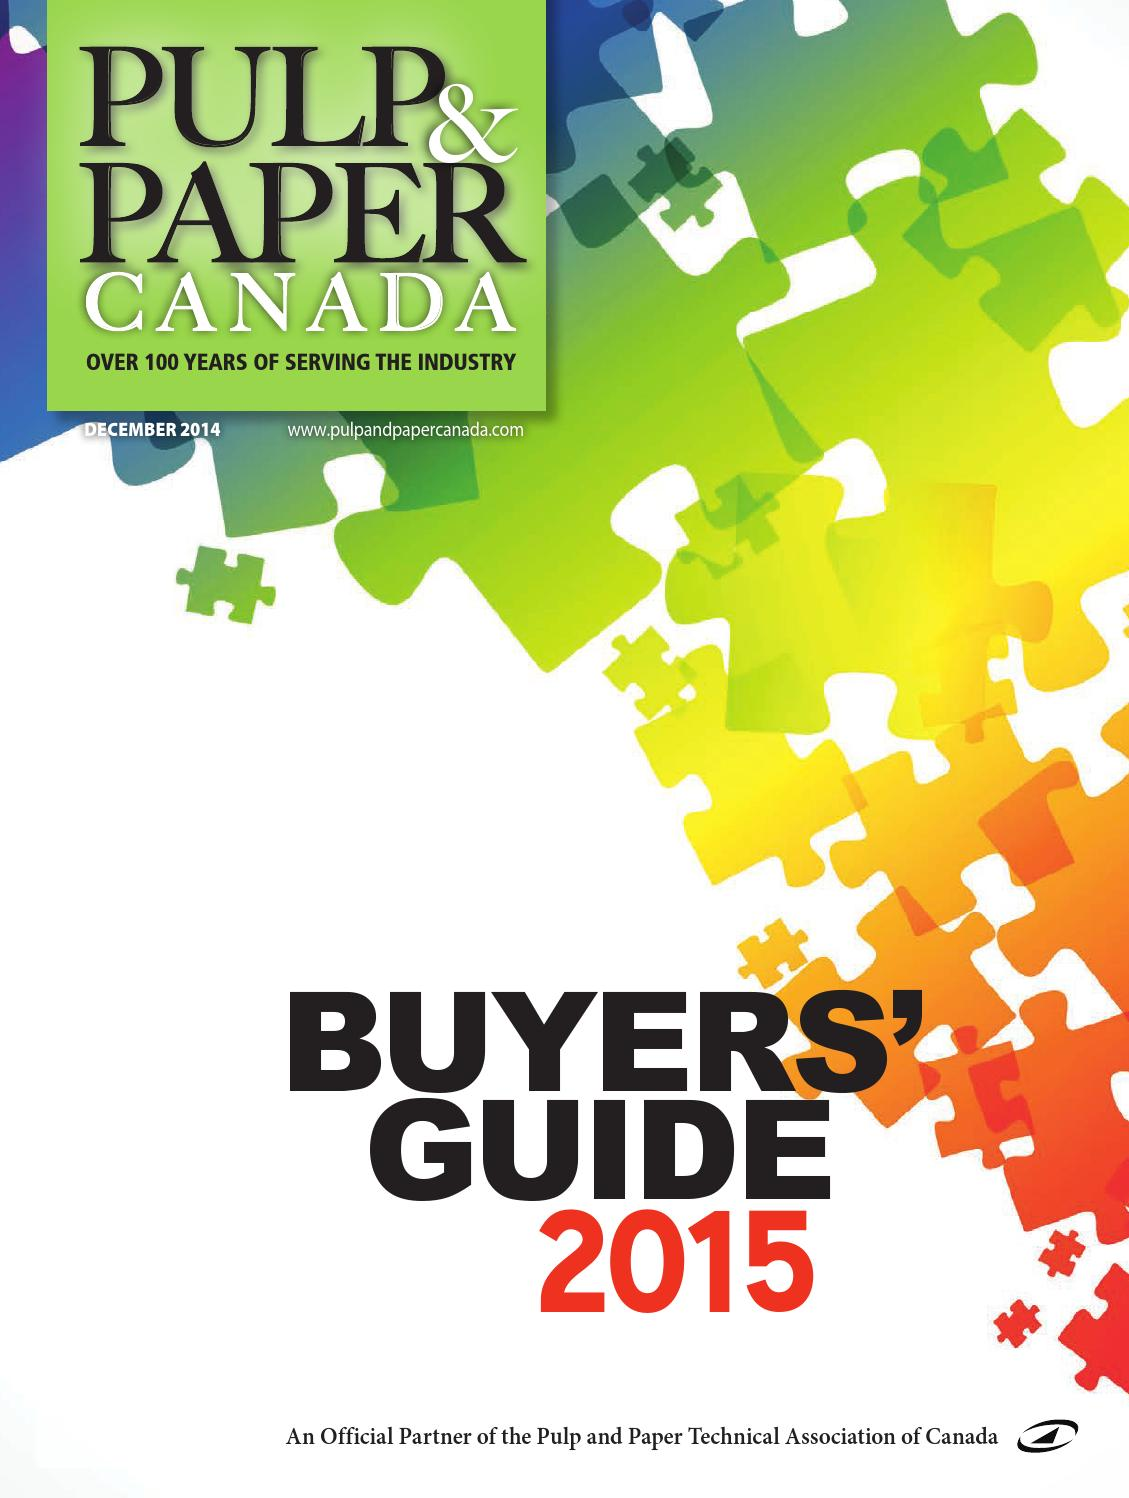 Pulp Paper Buyers Guide 2015 By Annex Business Media Issuu Cd 4013 Toggle Switch Design Trick 1 Electronics Hobby